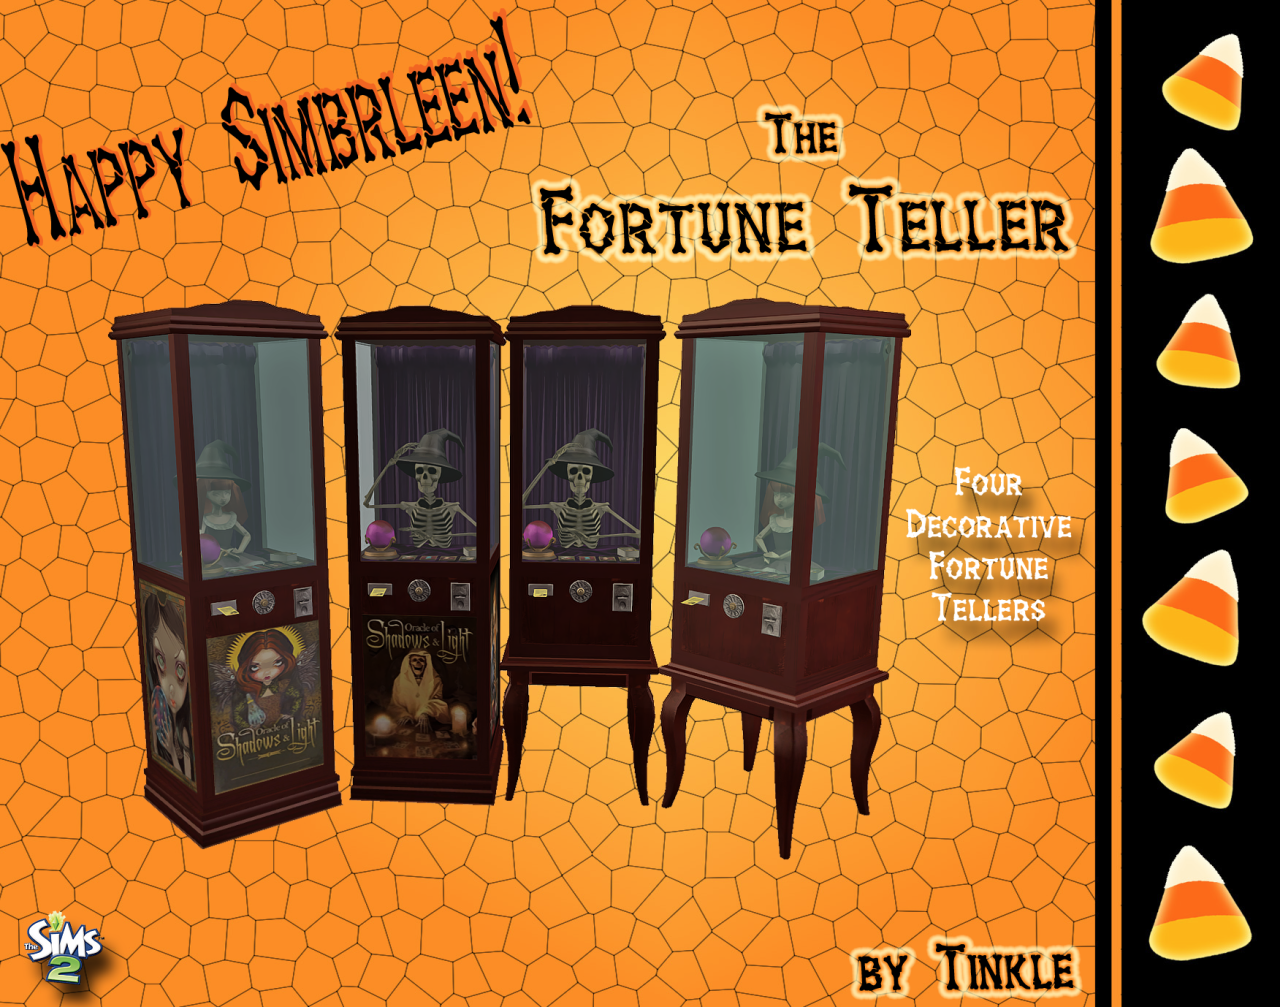 I decided not to do a porch light today and just release all the gifts, those that were sent the link for Pumpkin spells received the Fortune Tellers by mistake for S2 and S4. The links are now fixed! Many thanks to UltraViolet for letting me know! So now you won't have to wait until Monday! Enjoy!Sims 2 - The Fortune TellerIncludes 4 Meshes and Collection File* Basegame Compatible & RecolorableDOWNLOAD HERESims 3 - The Fortune TellerIncludes 4 Meshes* Basegame Compatible* Not Ca...